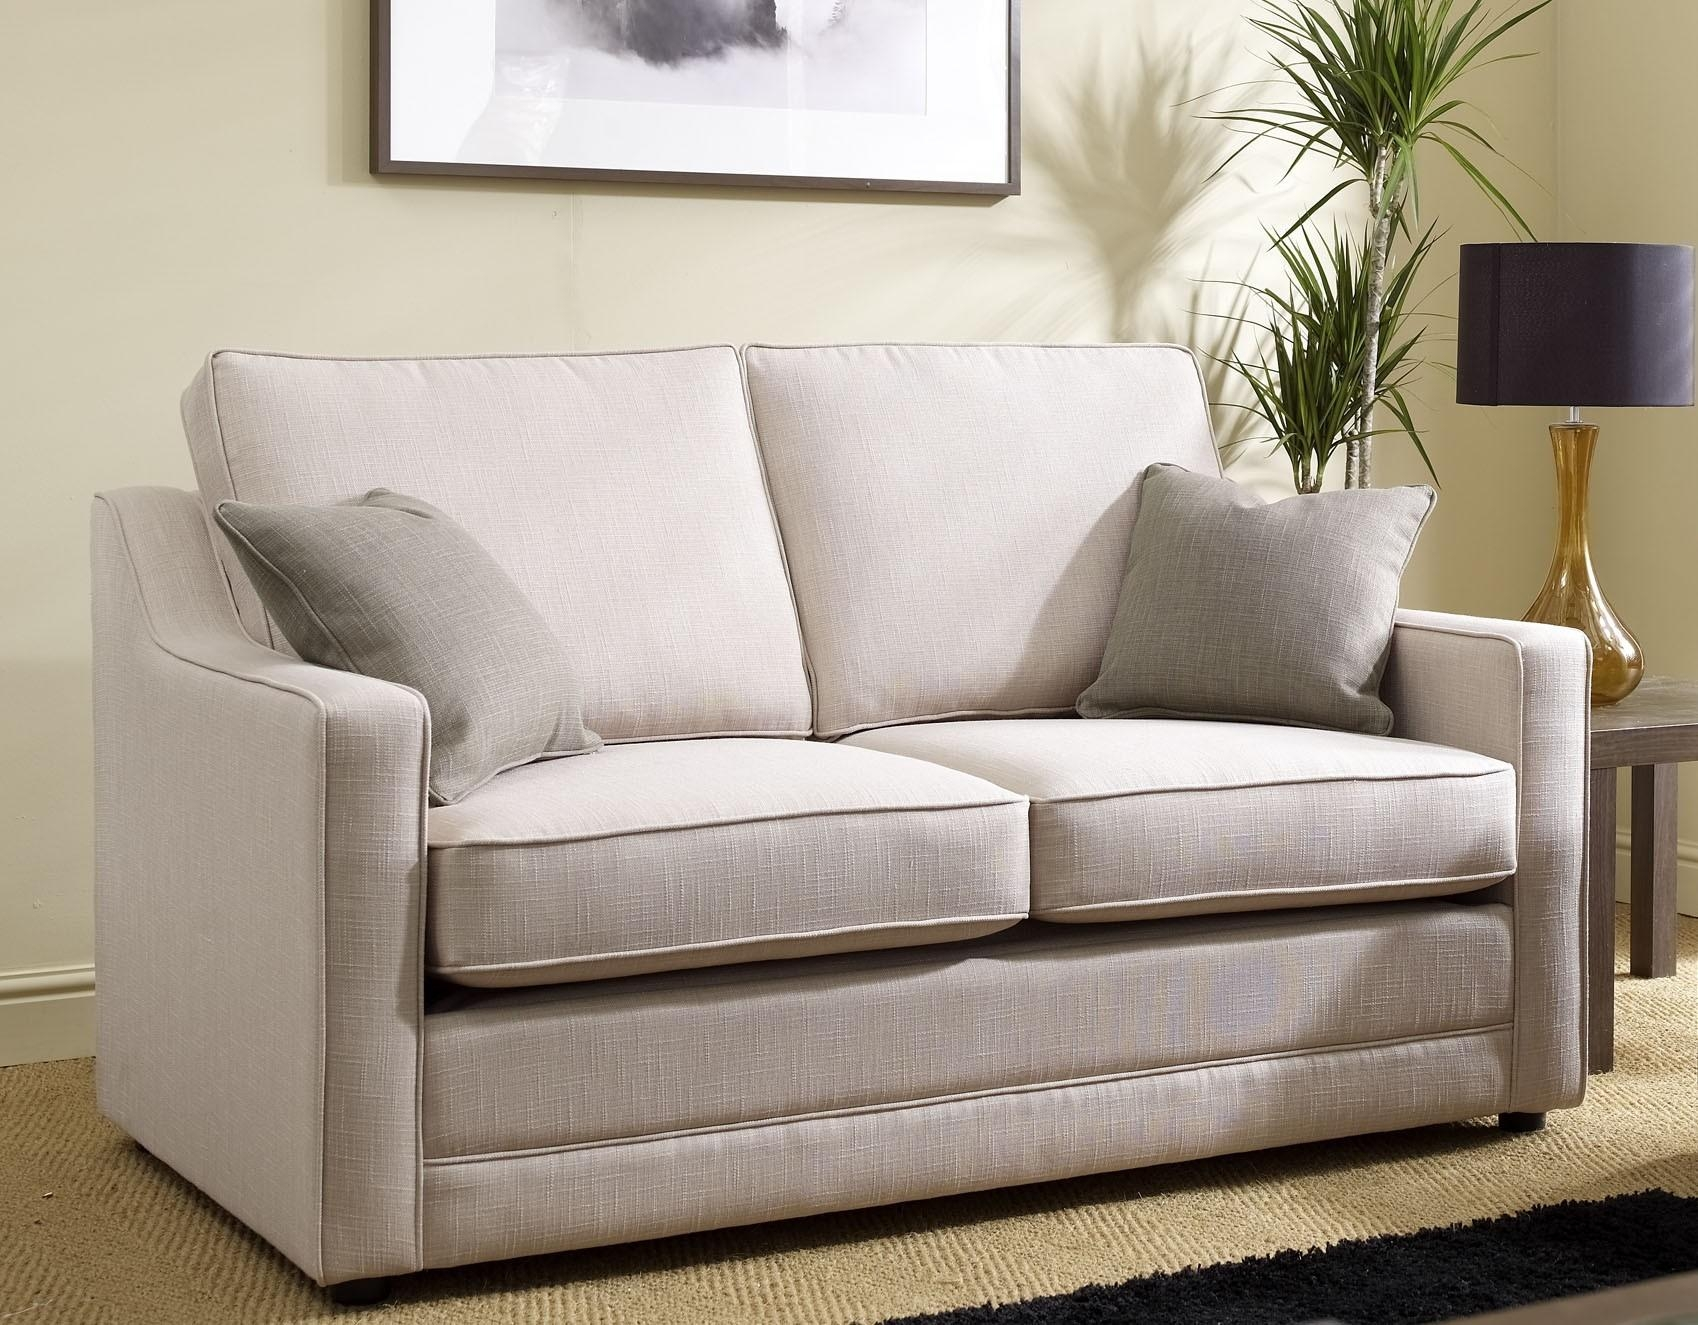 Small Sofas Small Rooms